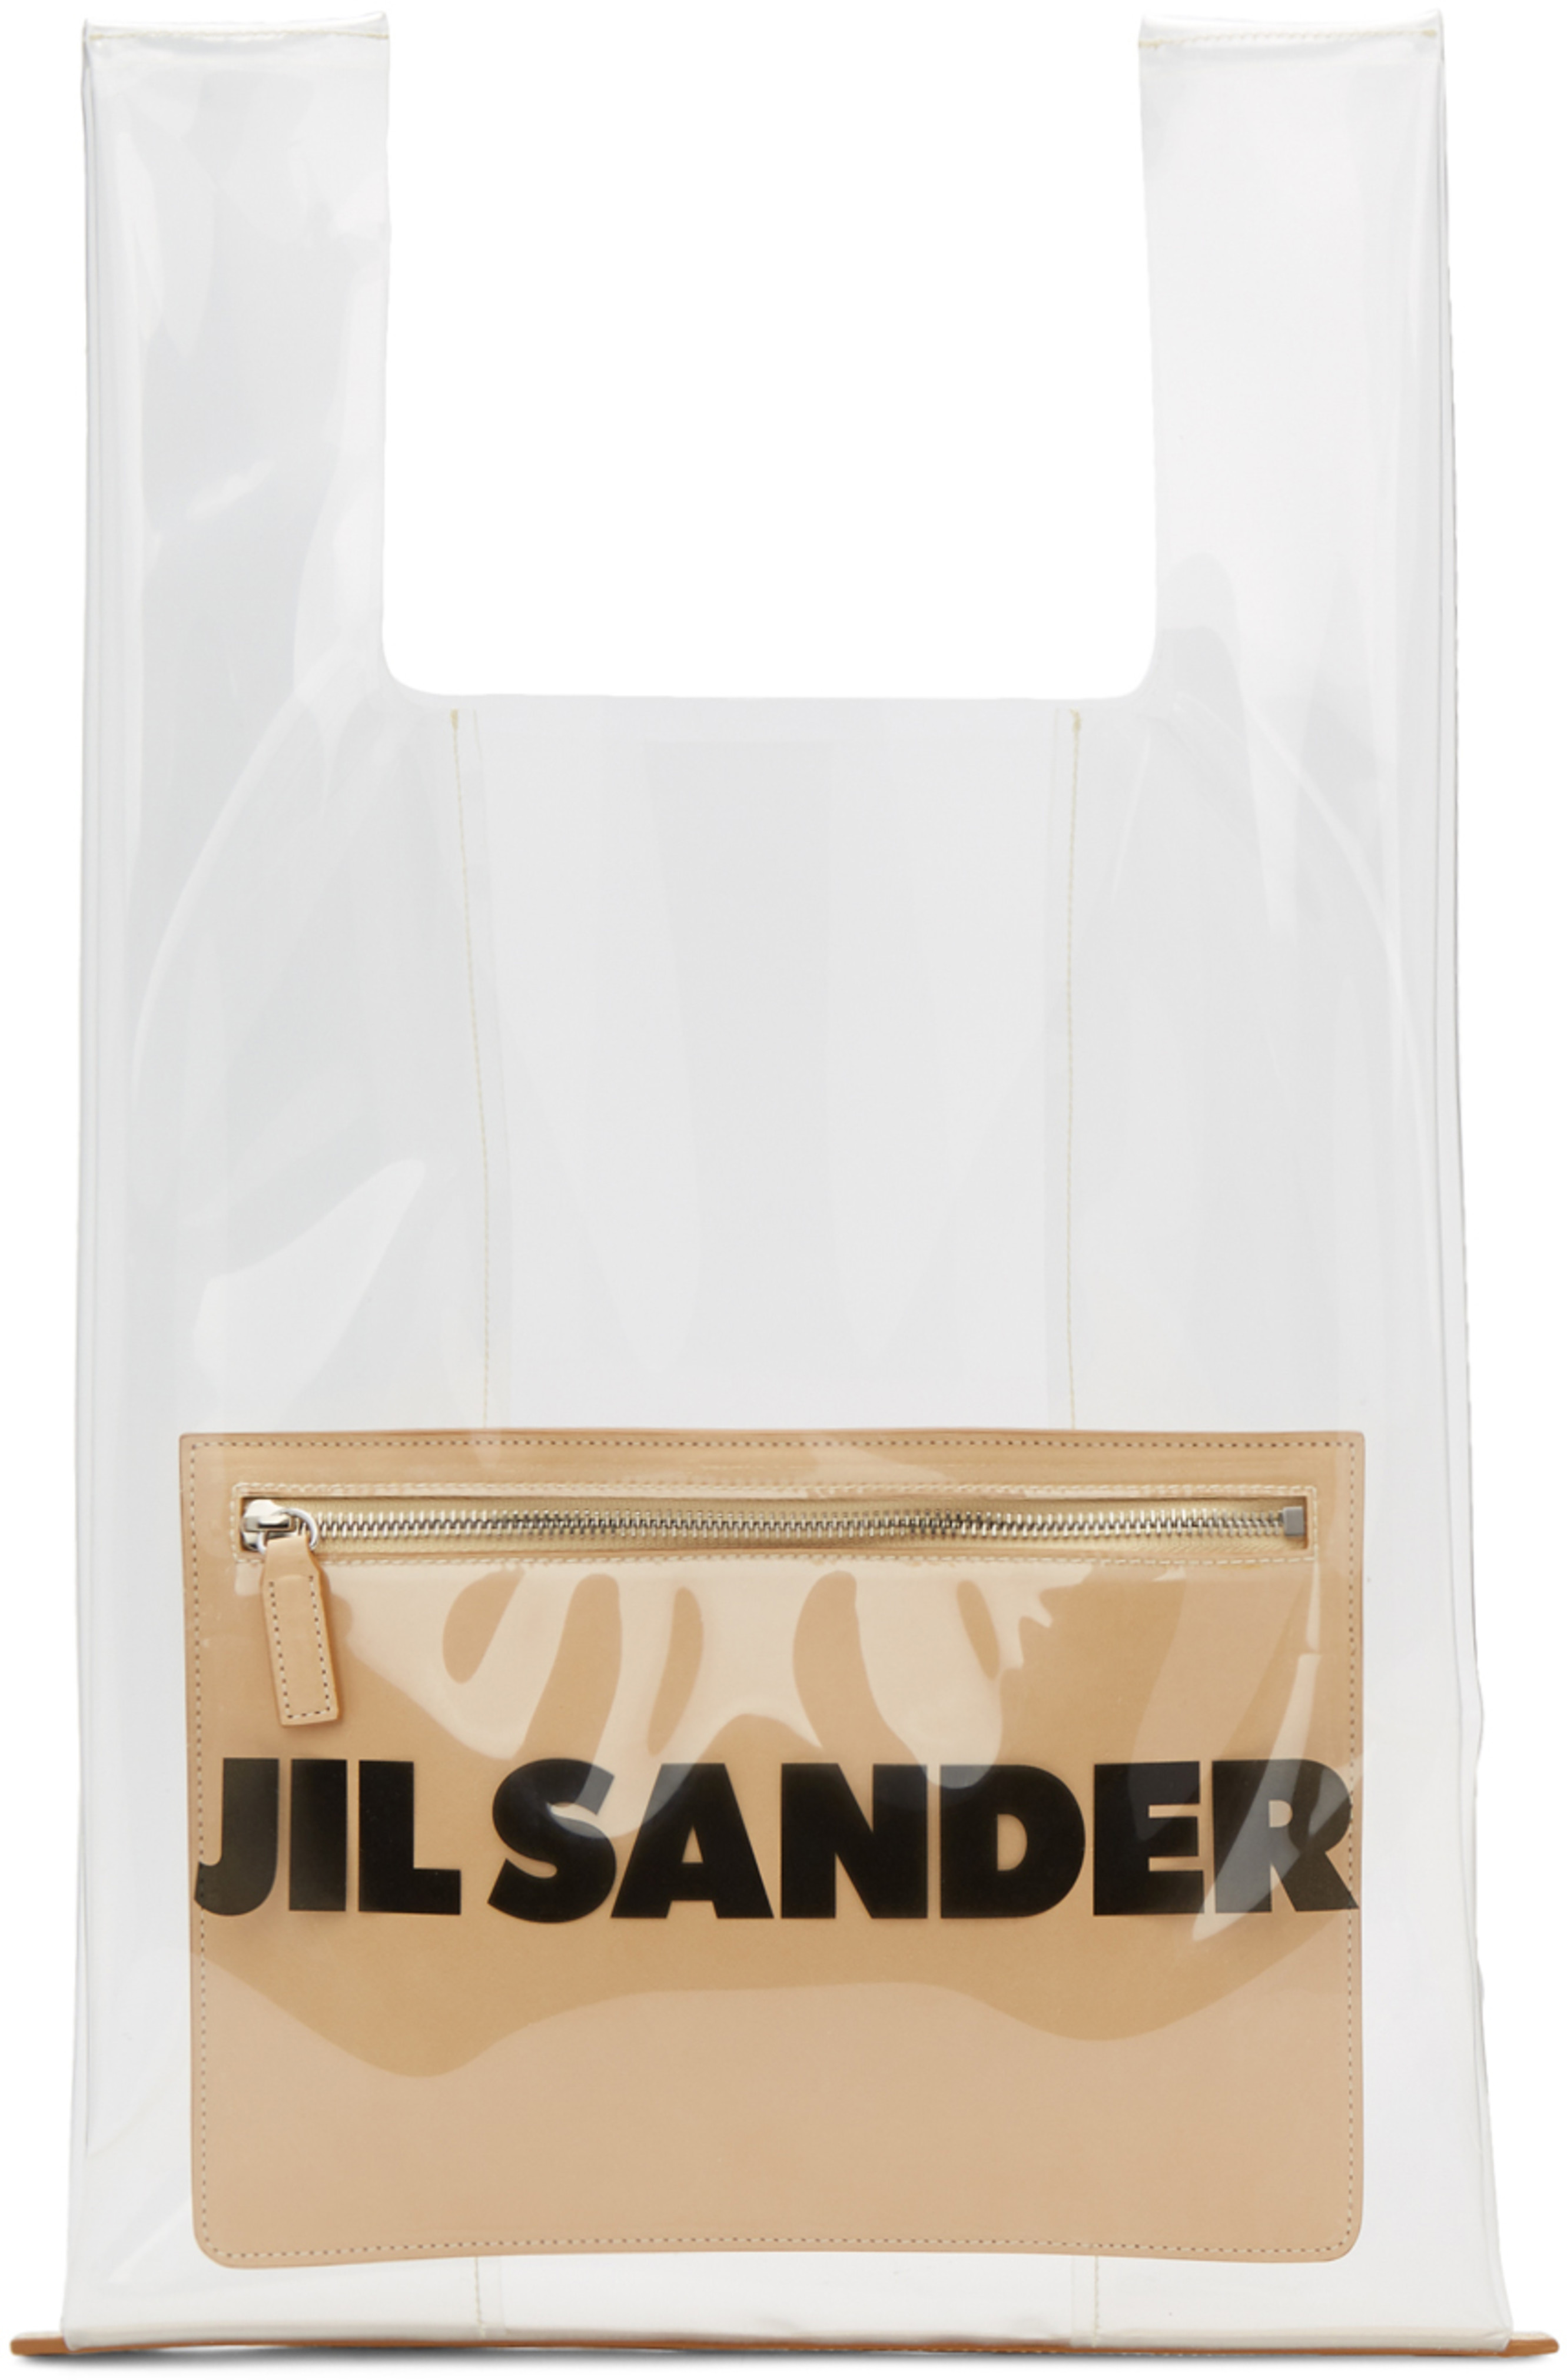 eaadc6acbe Jil Sander for Women SS19 Collection | SSENSE Canada